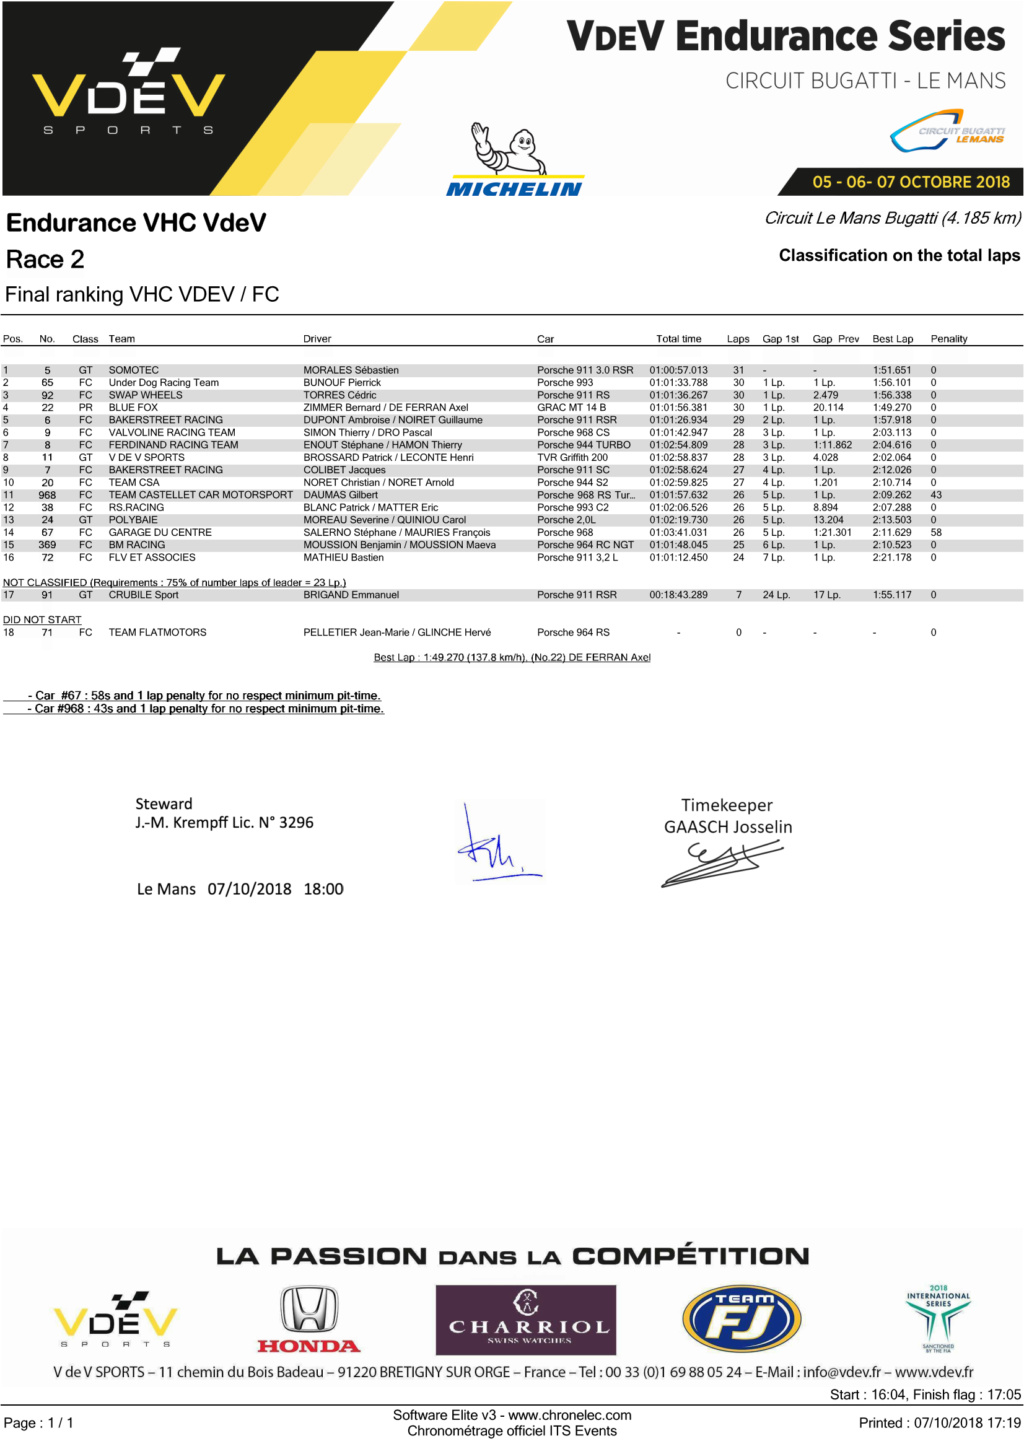 [968 TURBO] Une 968 turbo Rs replica pour courrir - Page 2 Course16